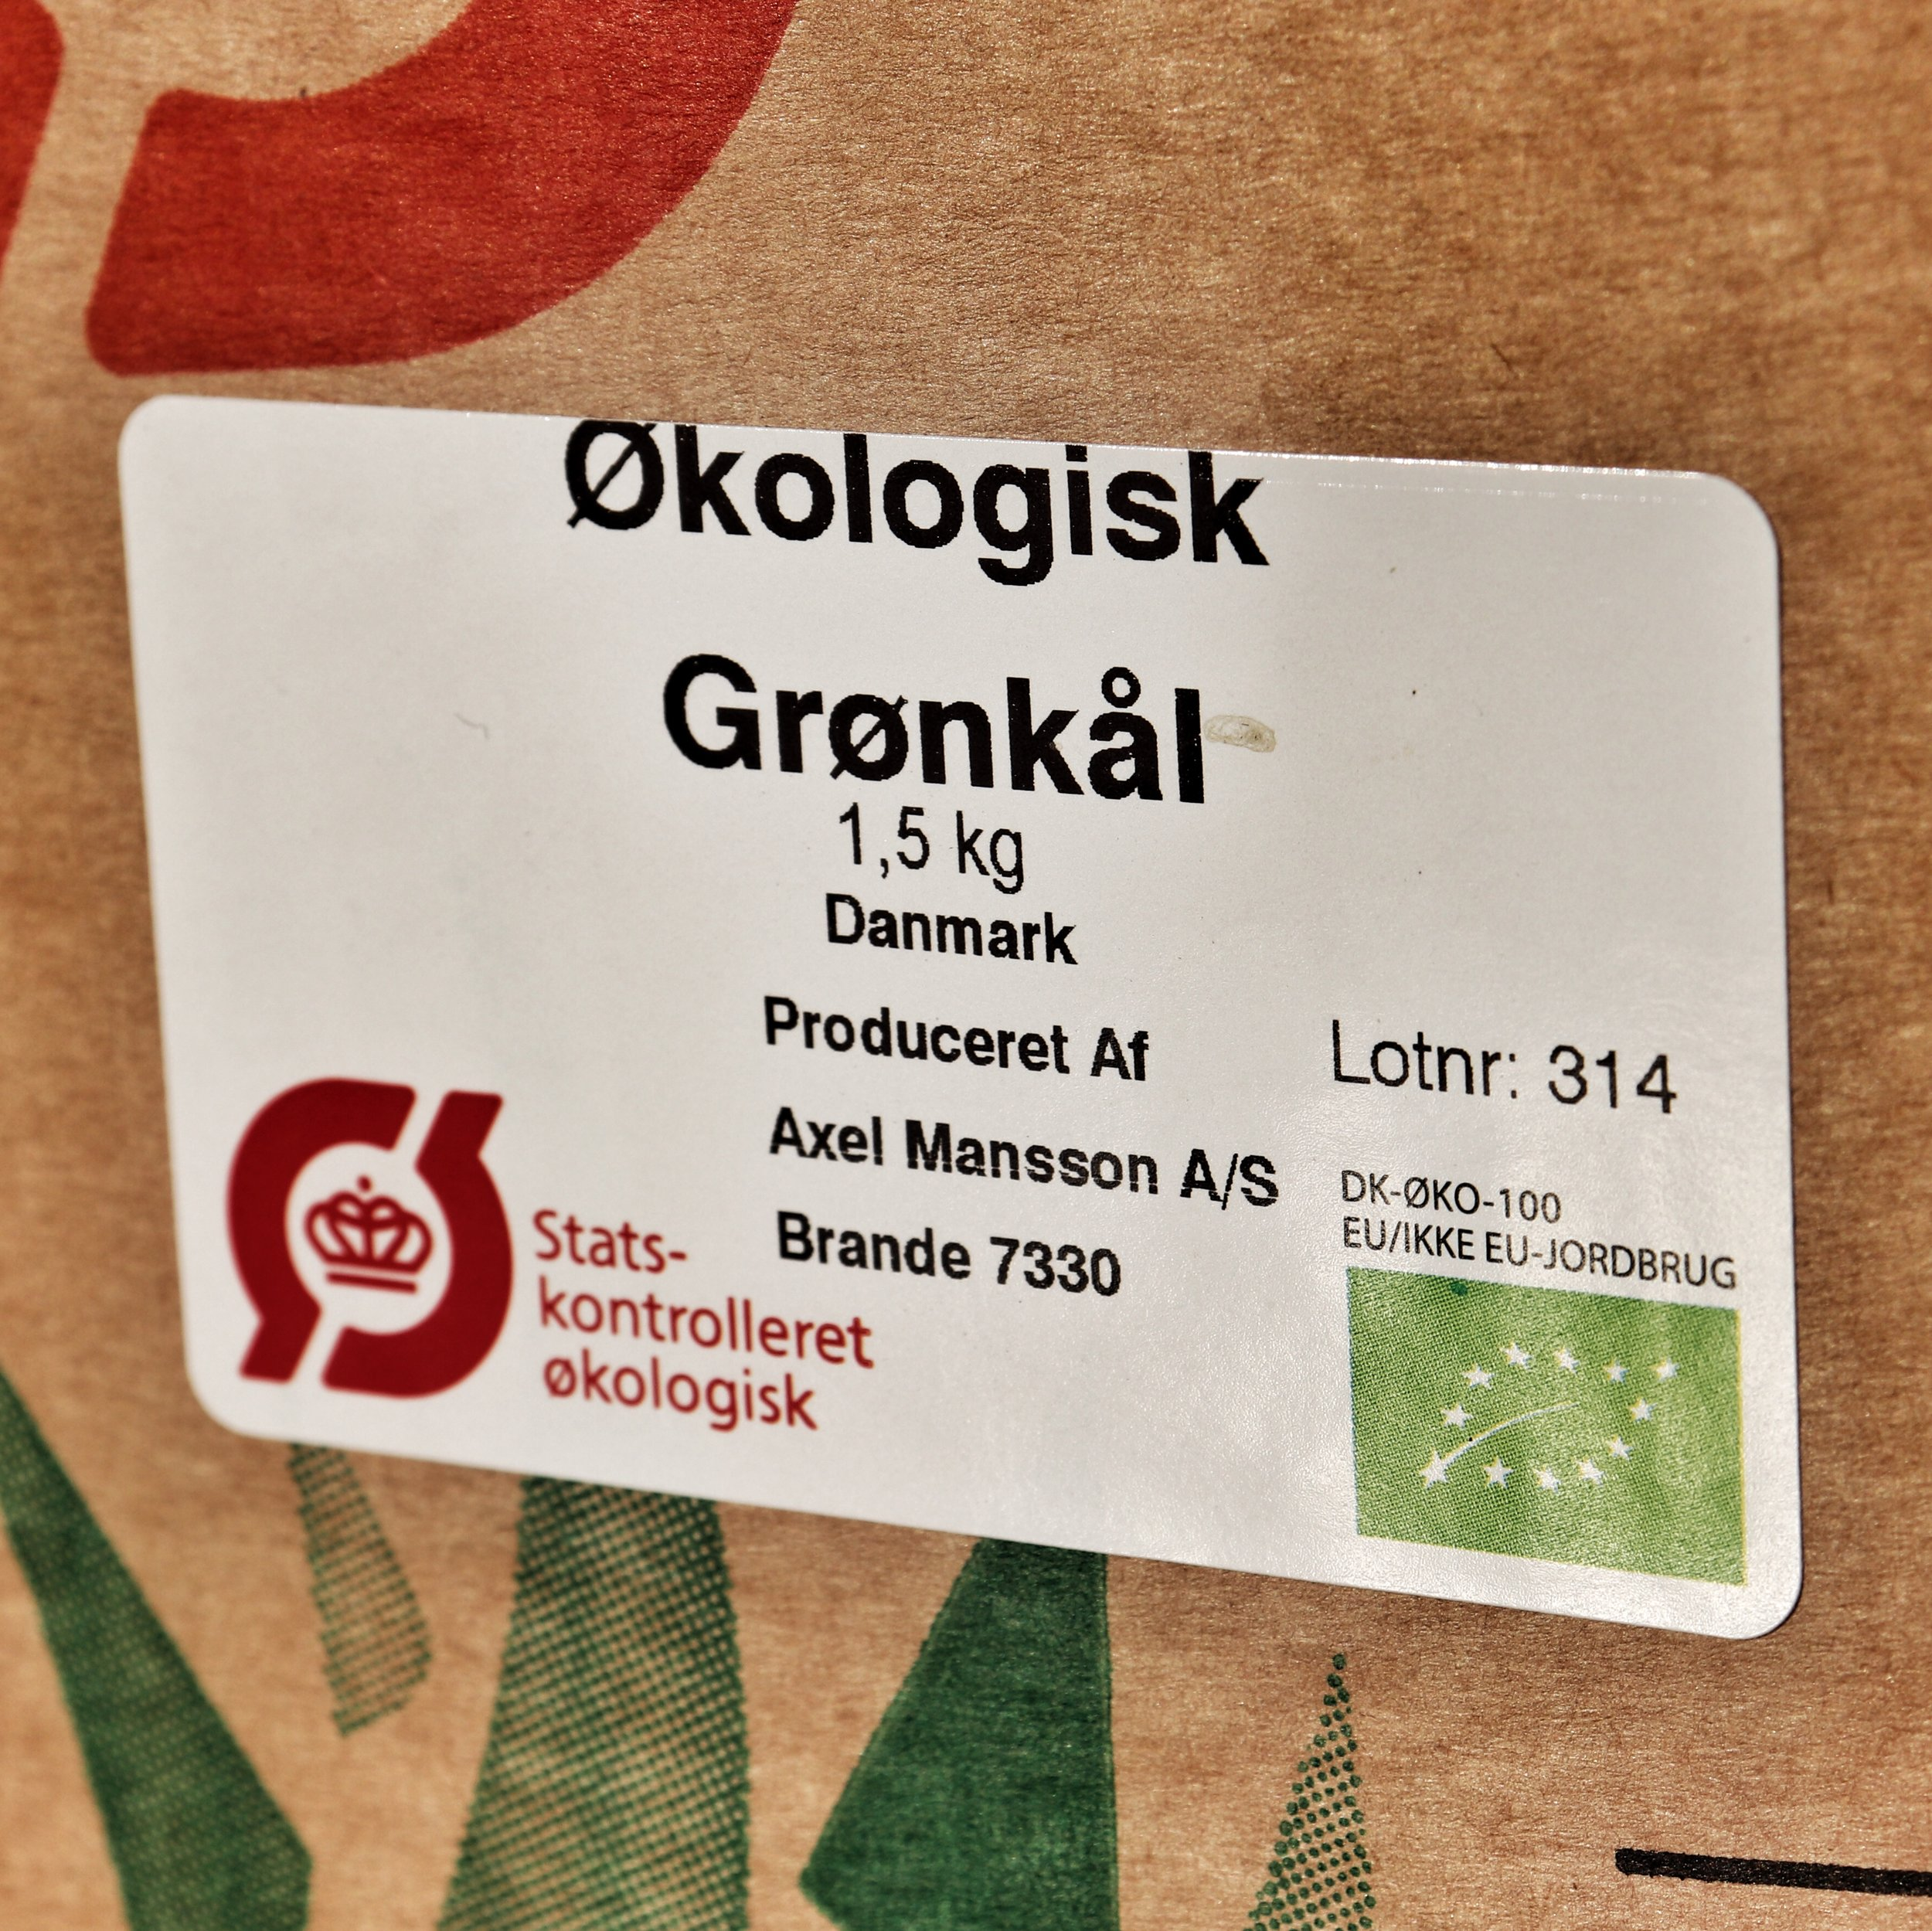 The green leaf logo in the right hand corner signifies an organic product in the EU.